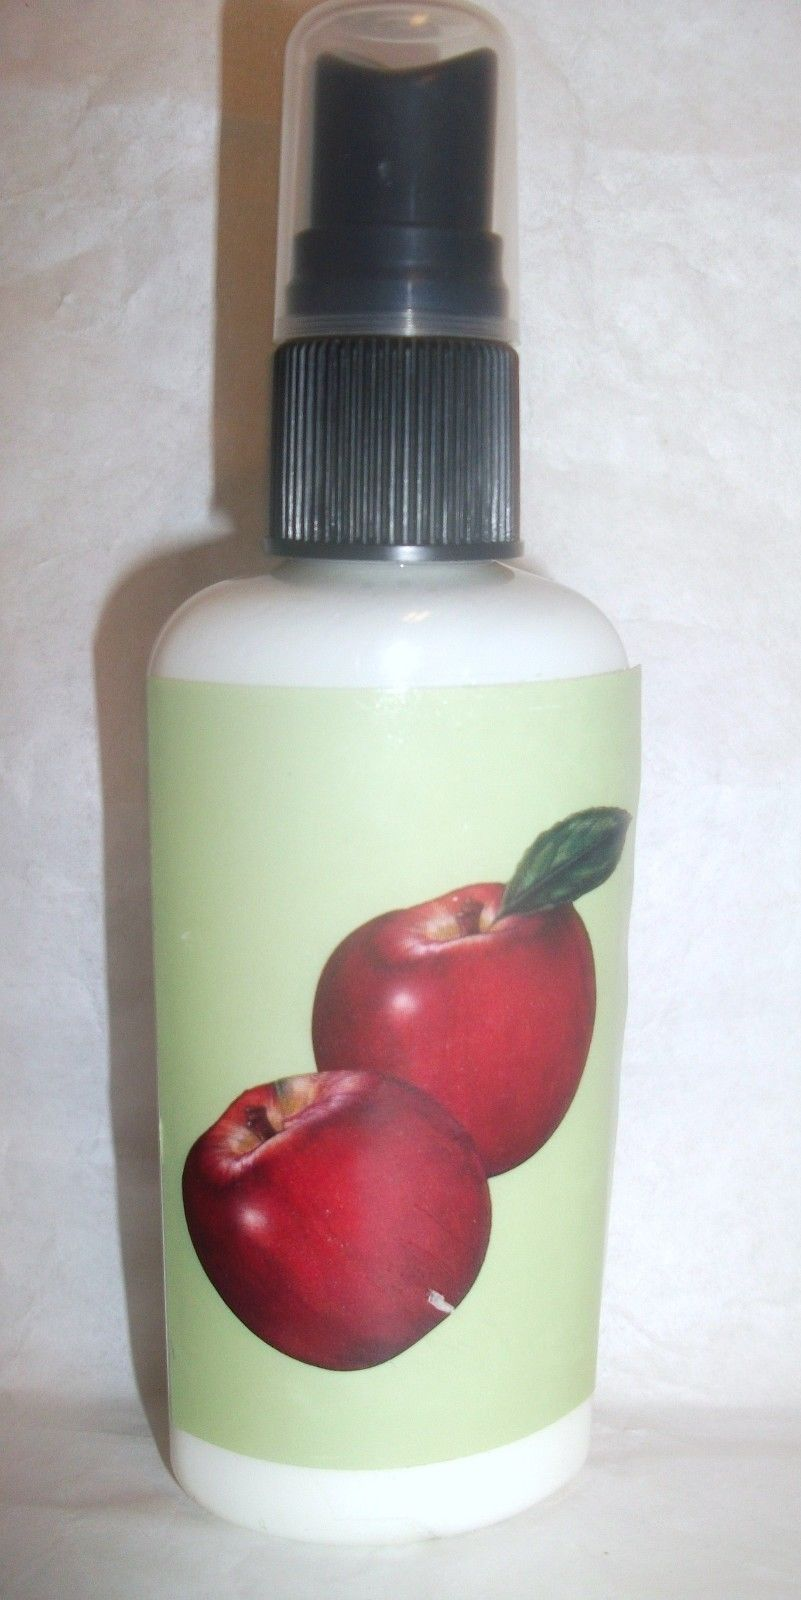 Primary image for Hanna's Candle Home Fragrance Spray APPLE CINNAMON